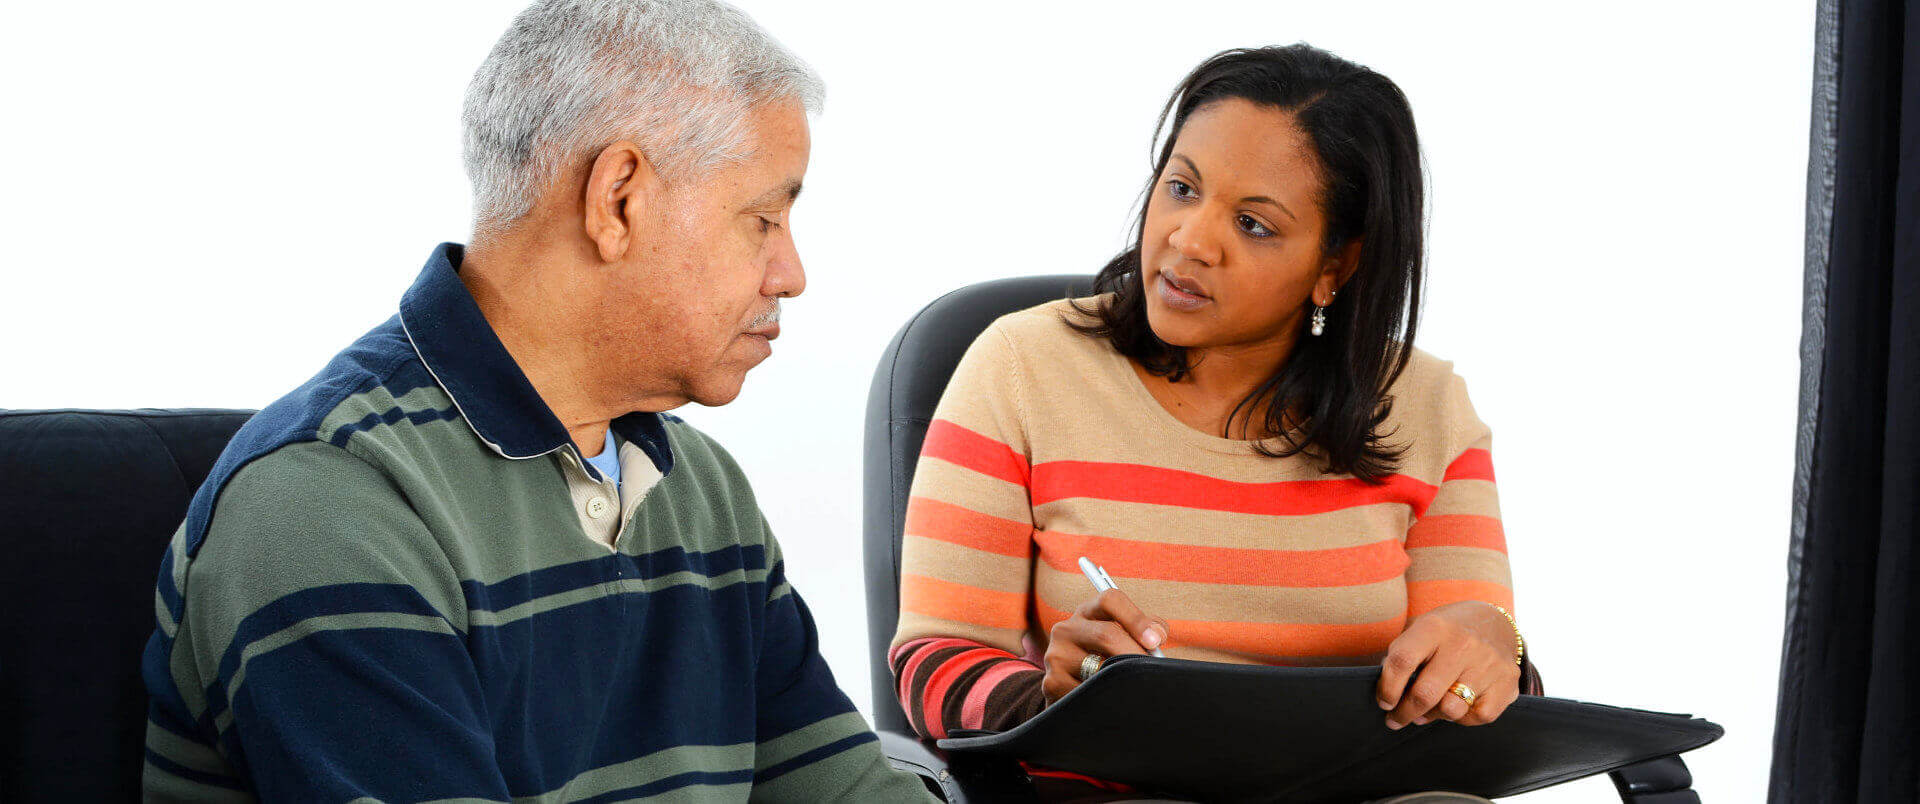 senior man having a session with therapist